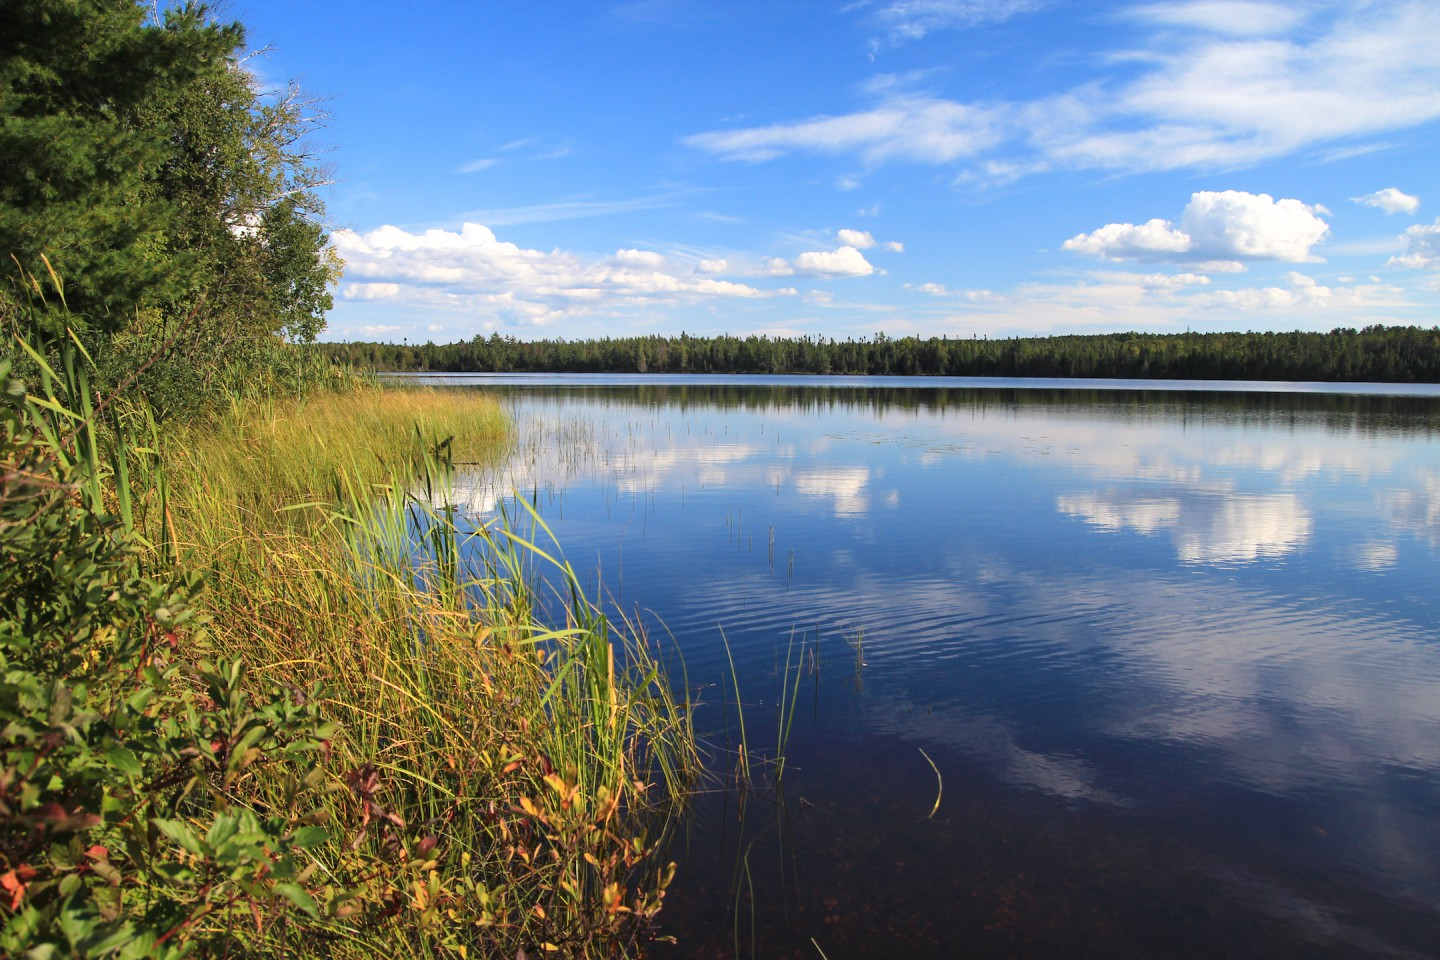 A landscape photo featuring vegetation next to a body of water.